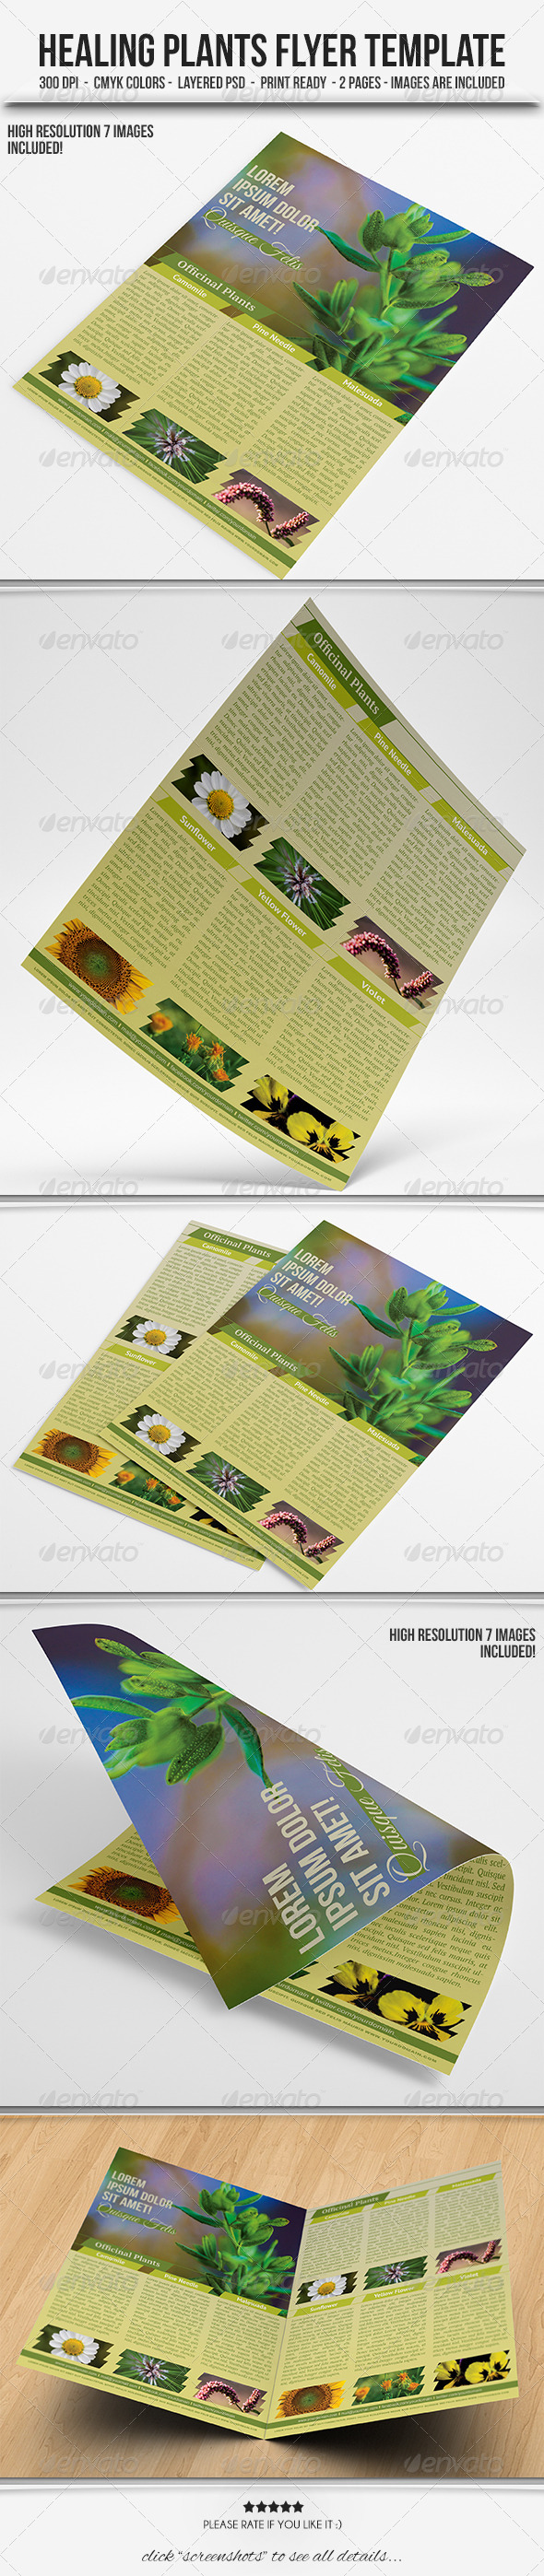 Healing Plants Flyer Template - Corporate Flyers